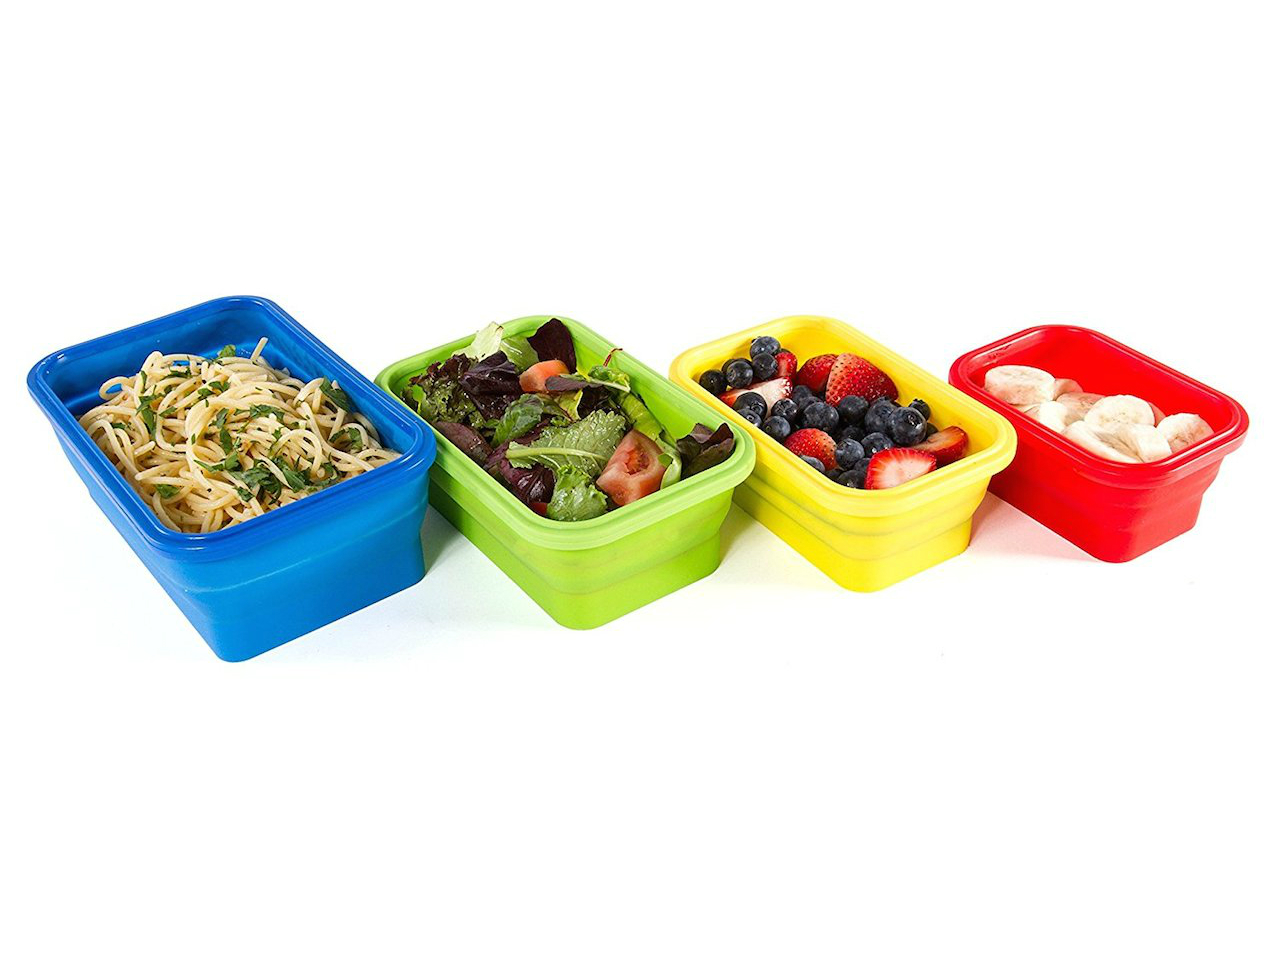 The Best Food Containers For Work Lunches